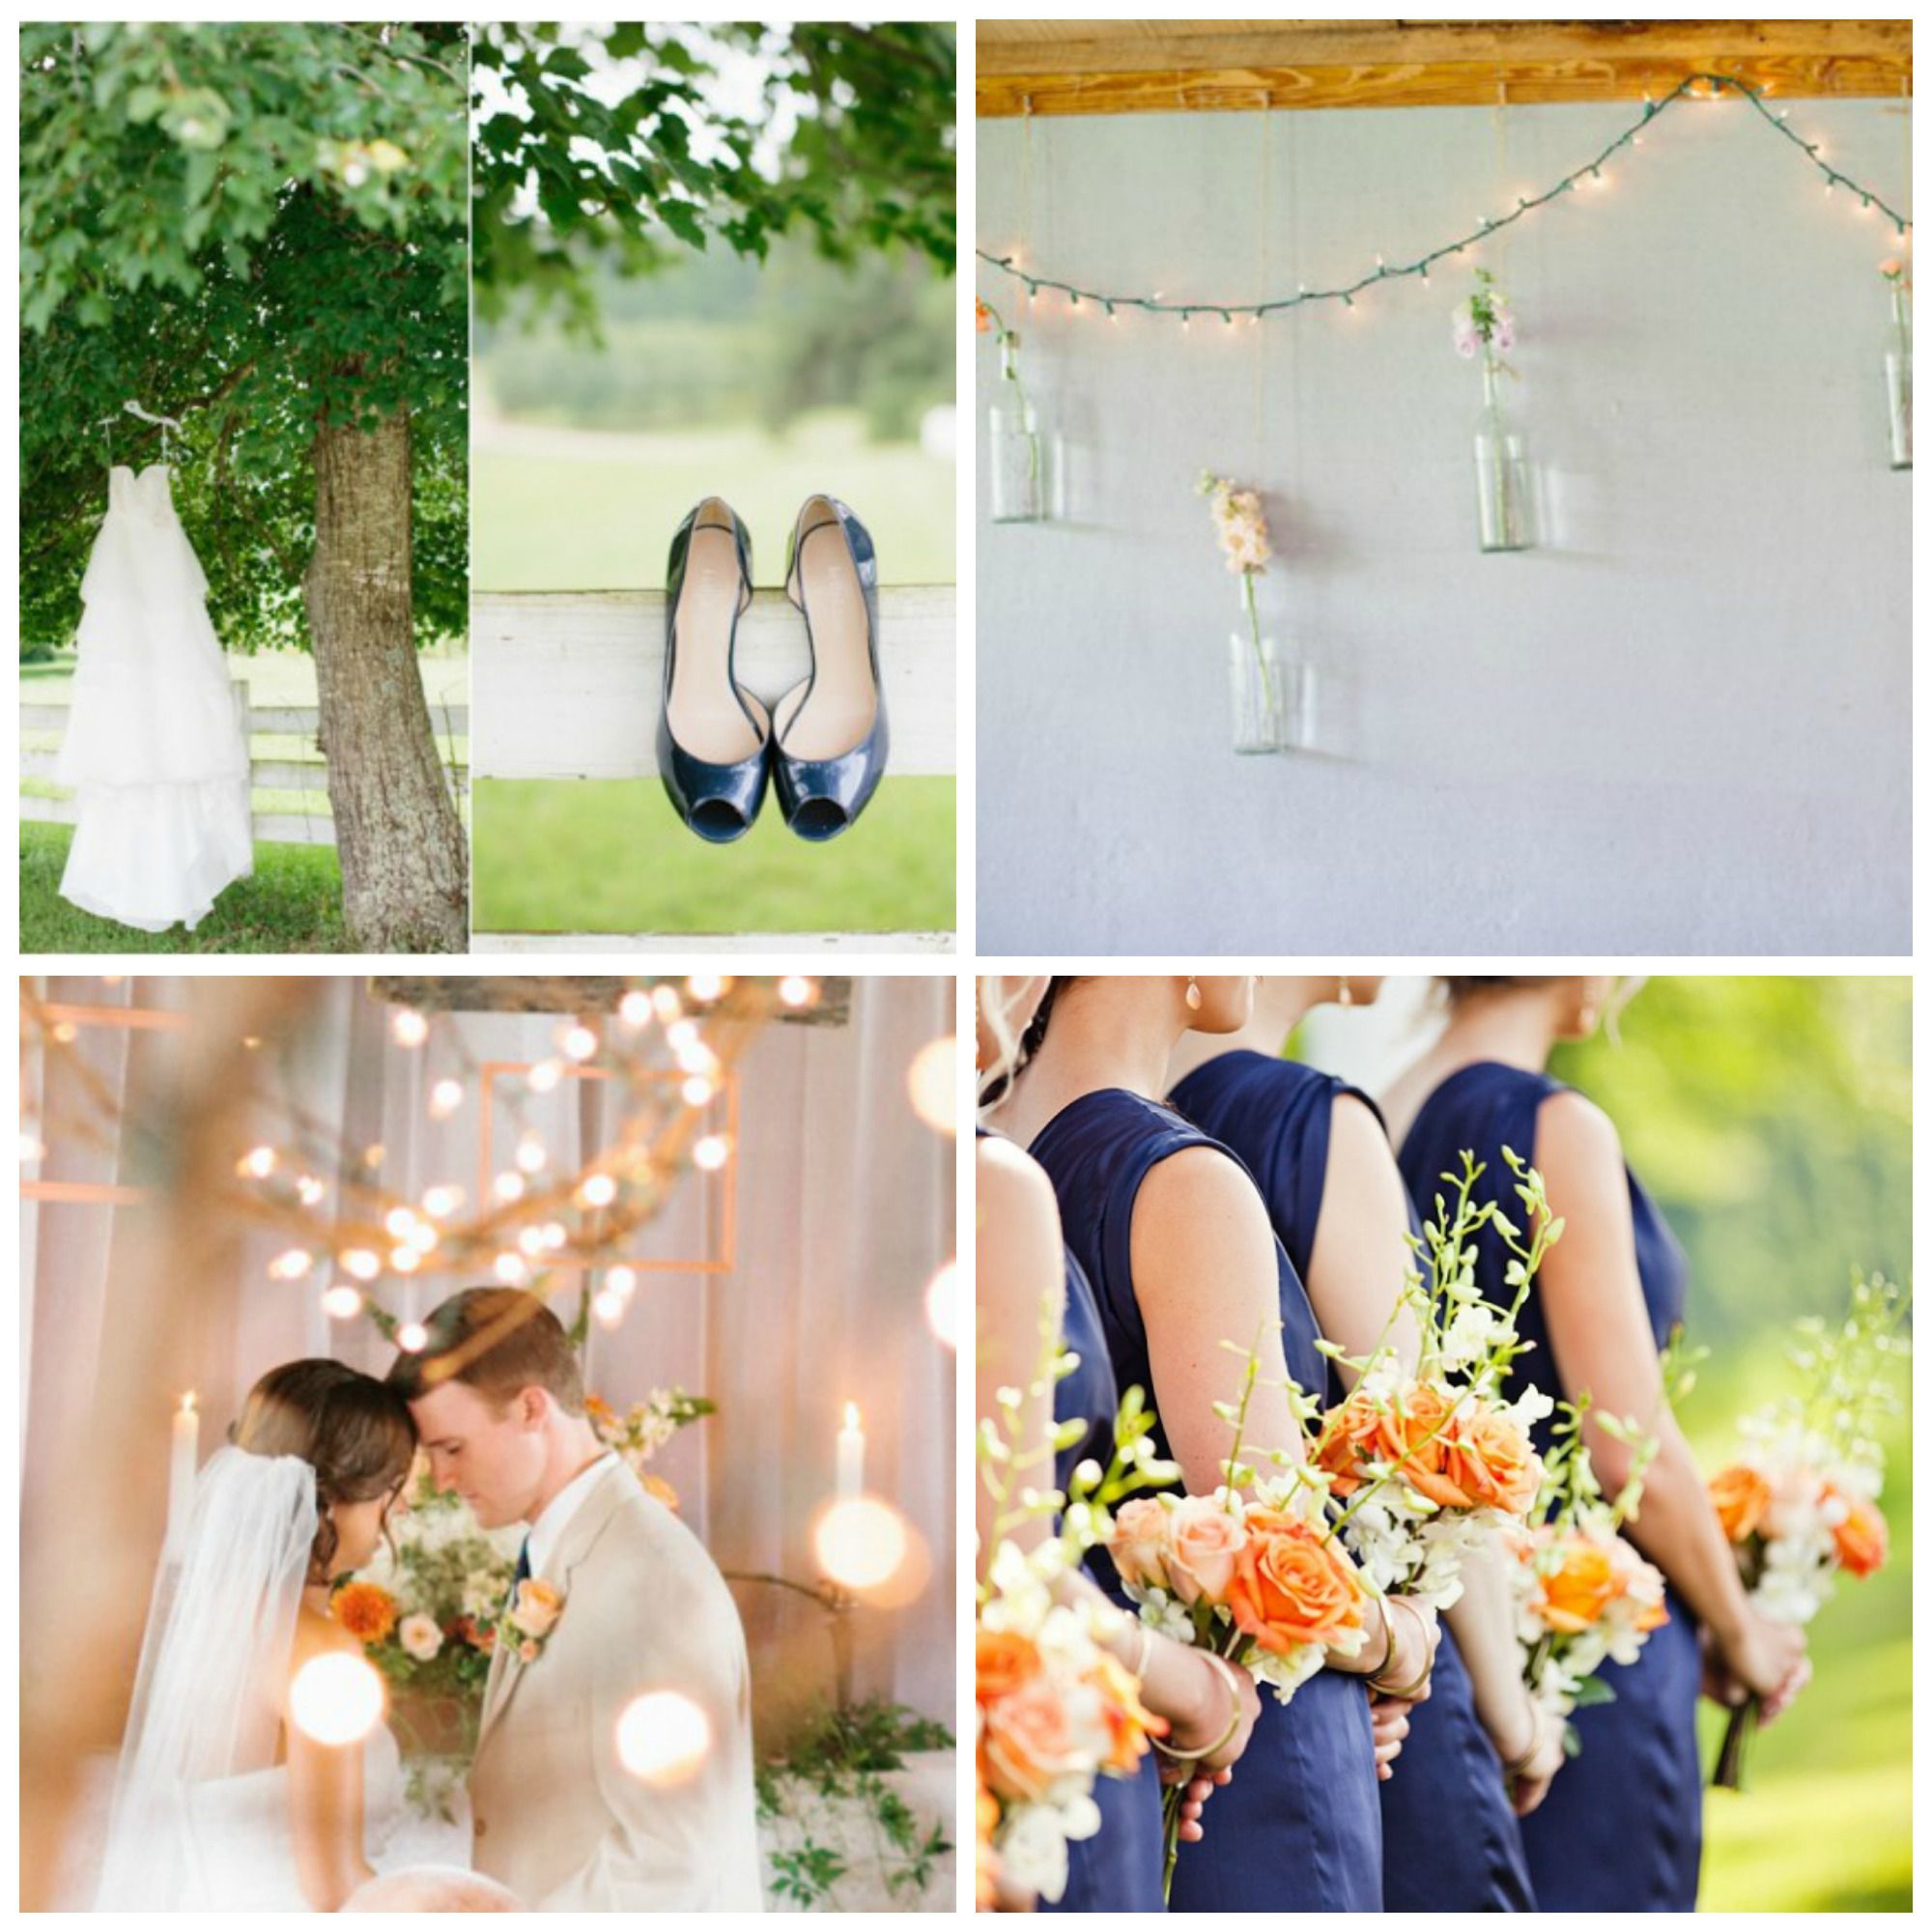 Wedding Backdrop Ideas: Wedding Color Inspiration : Peach And Navy